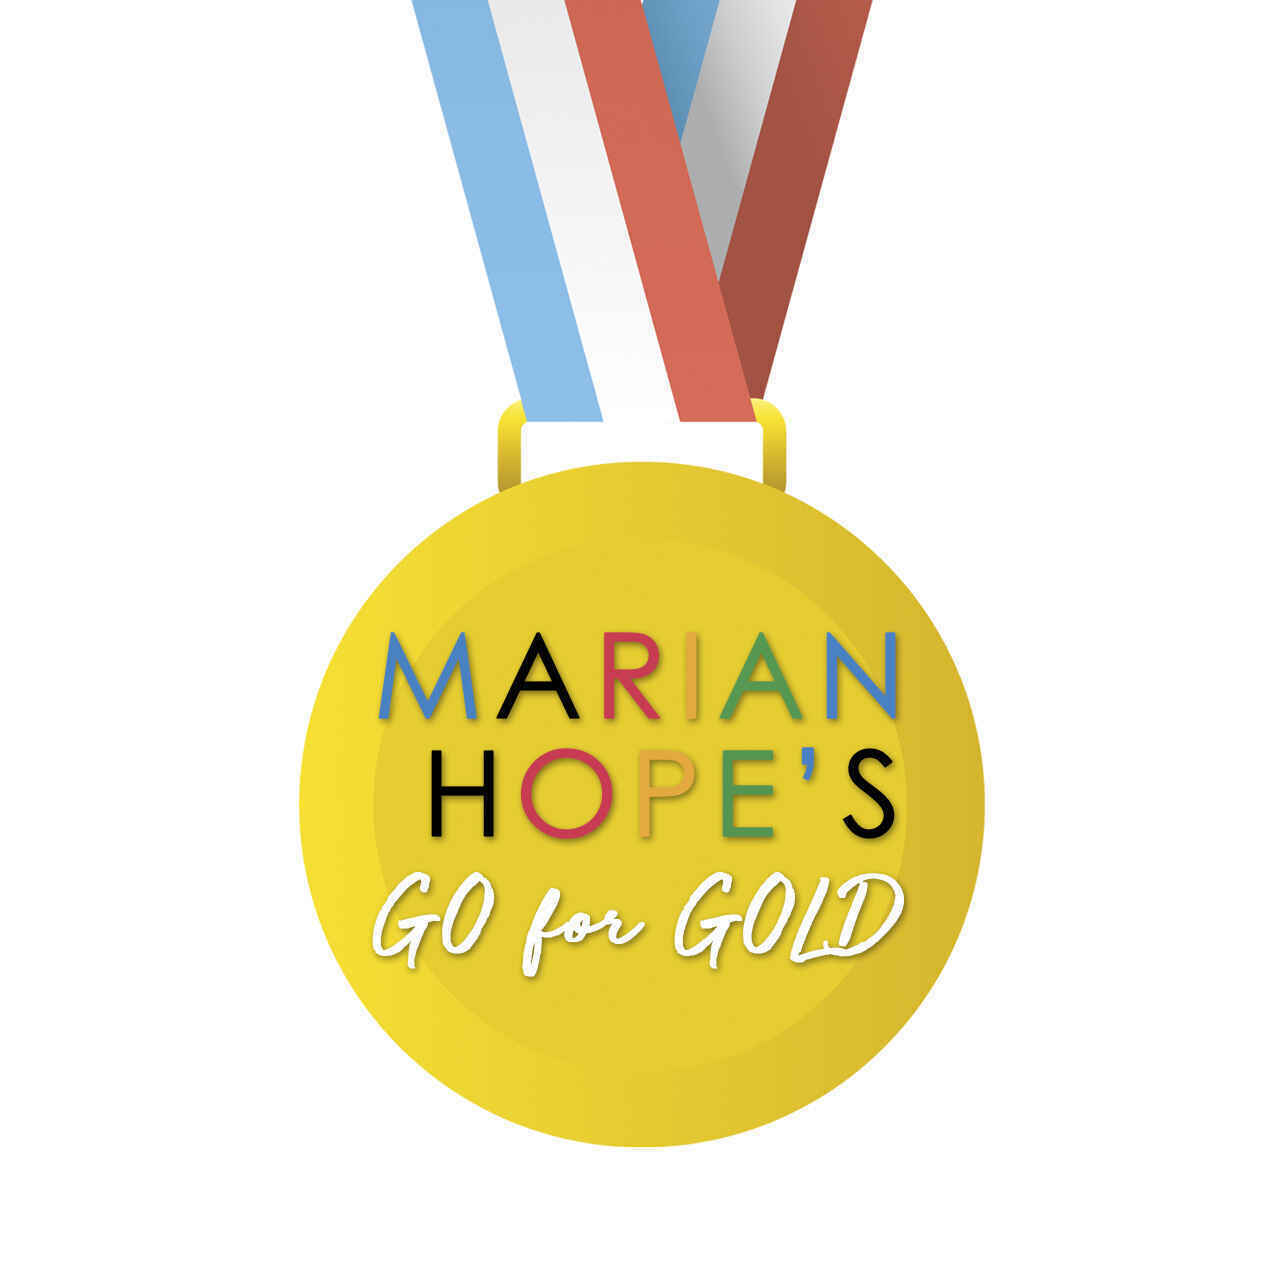 GO for GOLD - Hope Olympics image